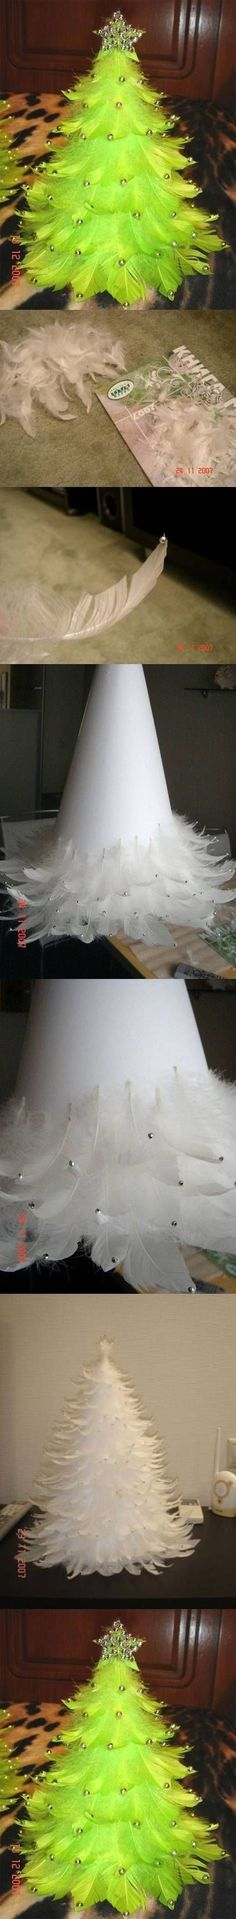 DIY Christmas Tree Out Of Feathers Pictures, Photos, and Images for Facebook, Tumblr, Pinterest, and Twitter